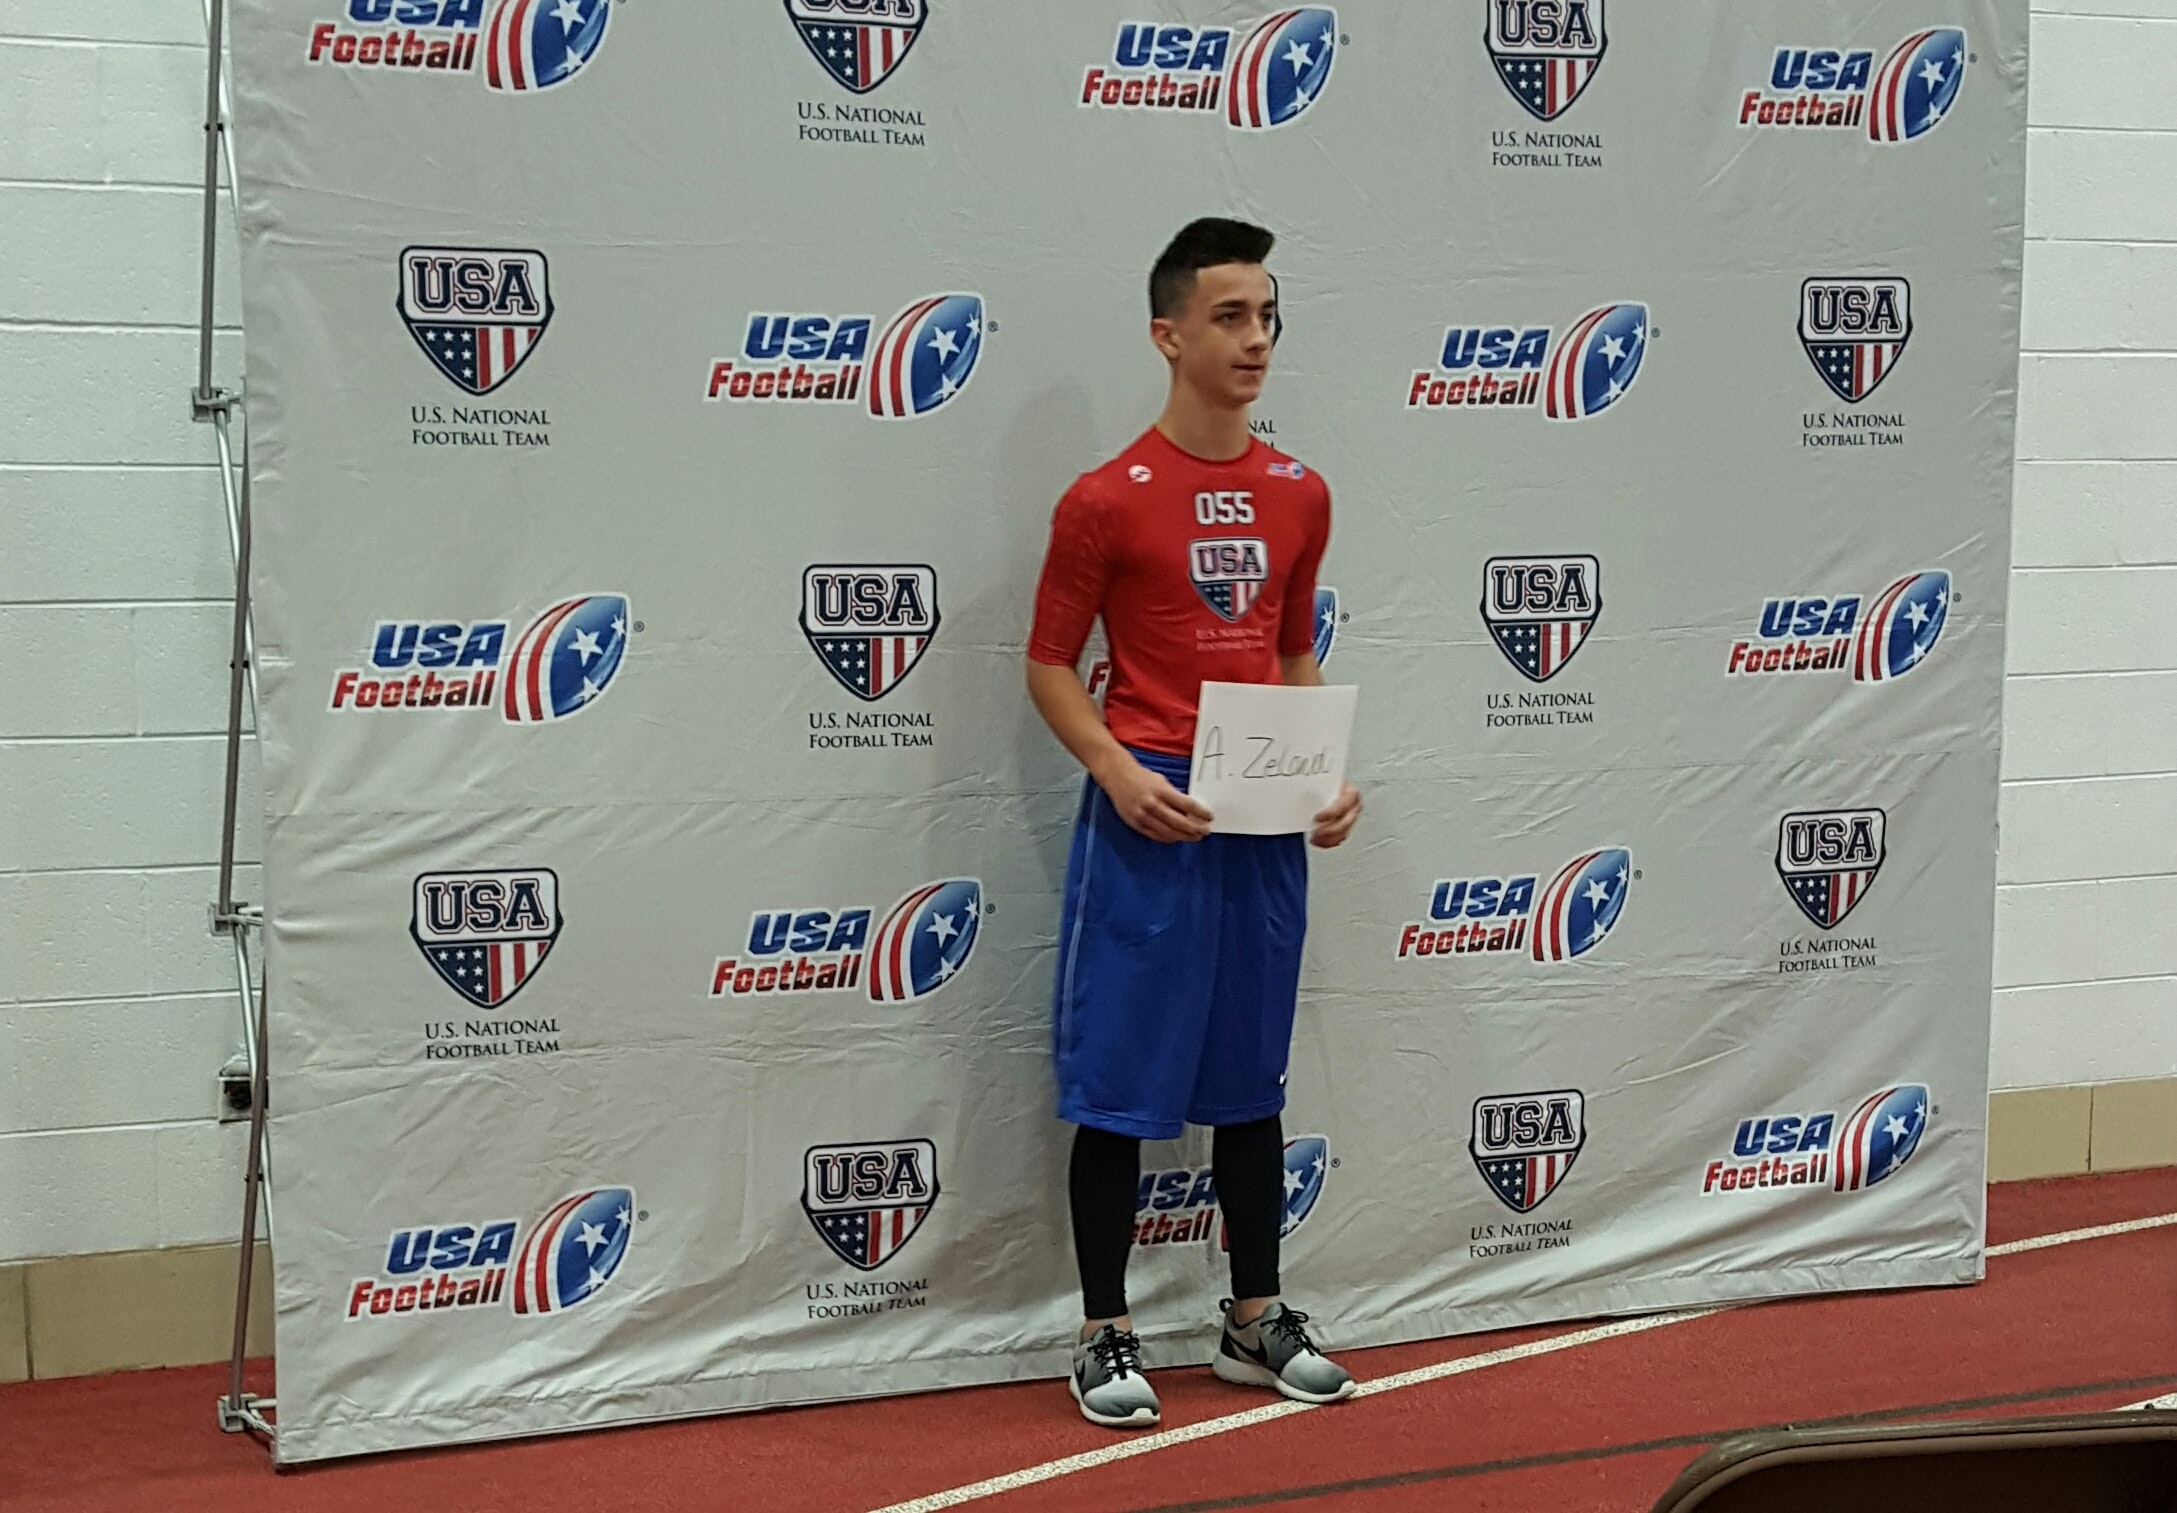 Help support Amedeo and his journey to team USA.